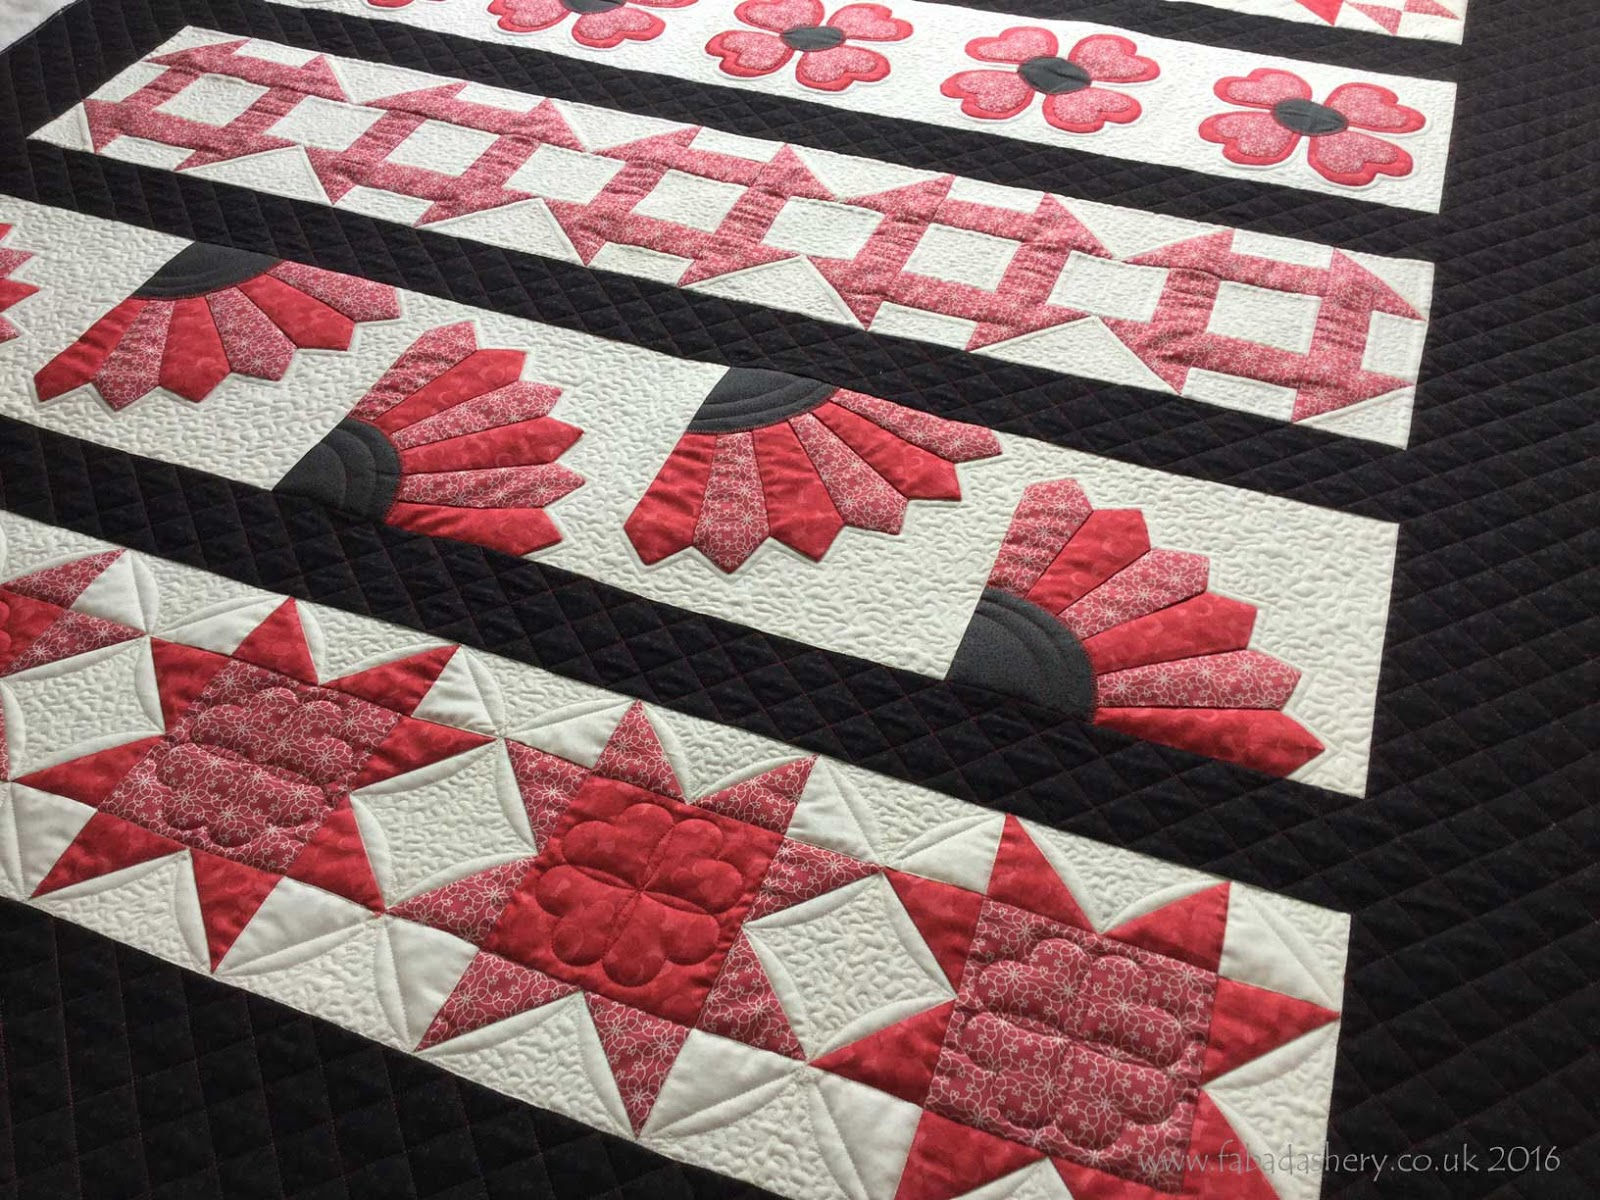 Fabadashery Longarm Quilting: Row by Row Sampler Quilt : long arm quilting uk - Adamdwight.com